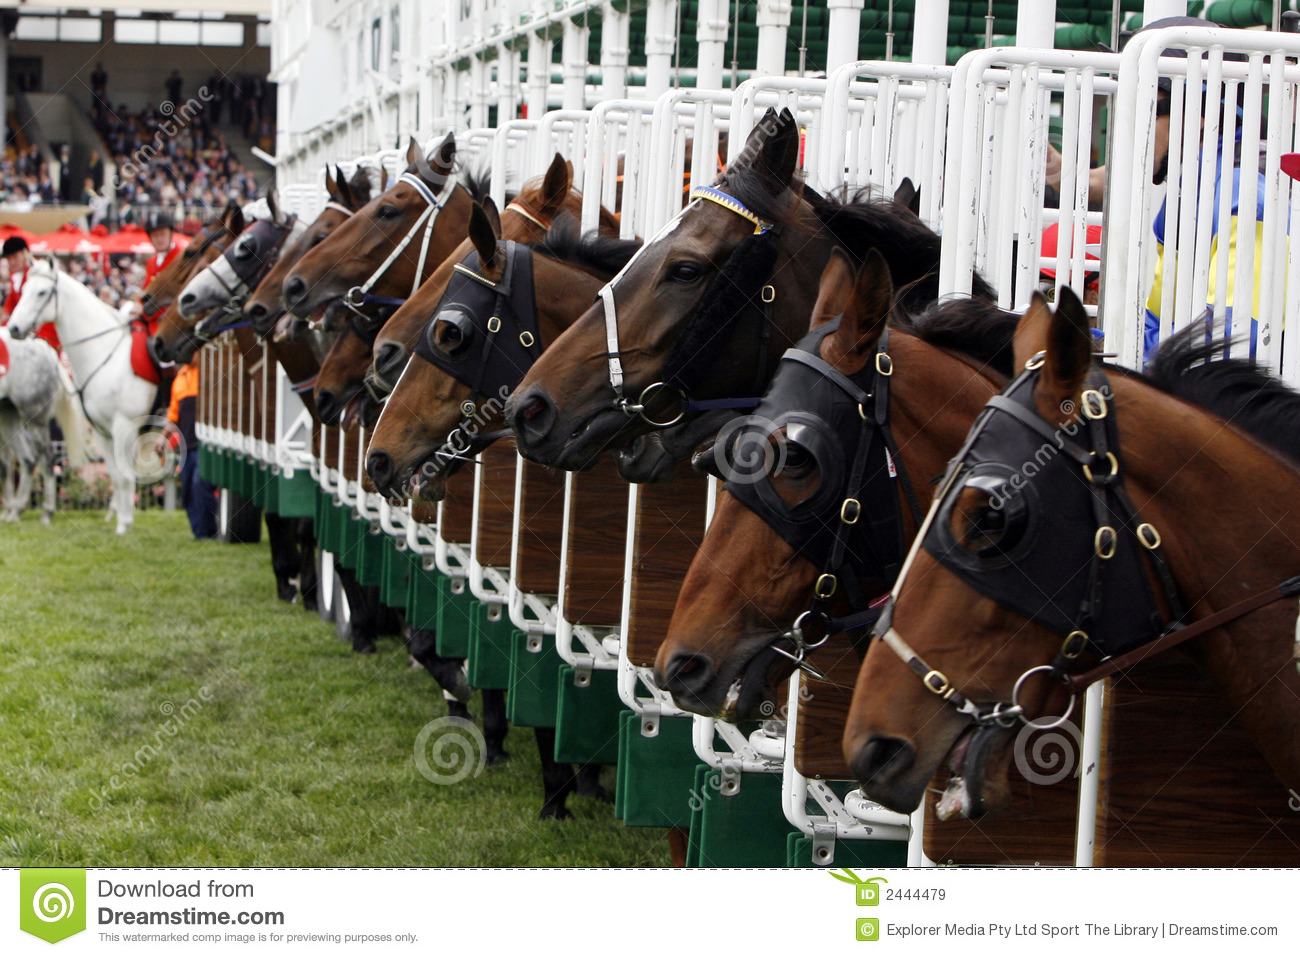 Horserace Start Gate Royalty Free Stock Images - Image: 2444479